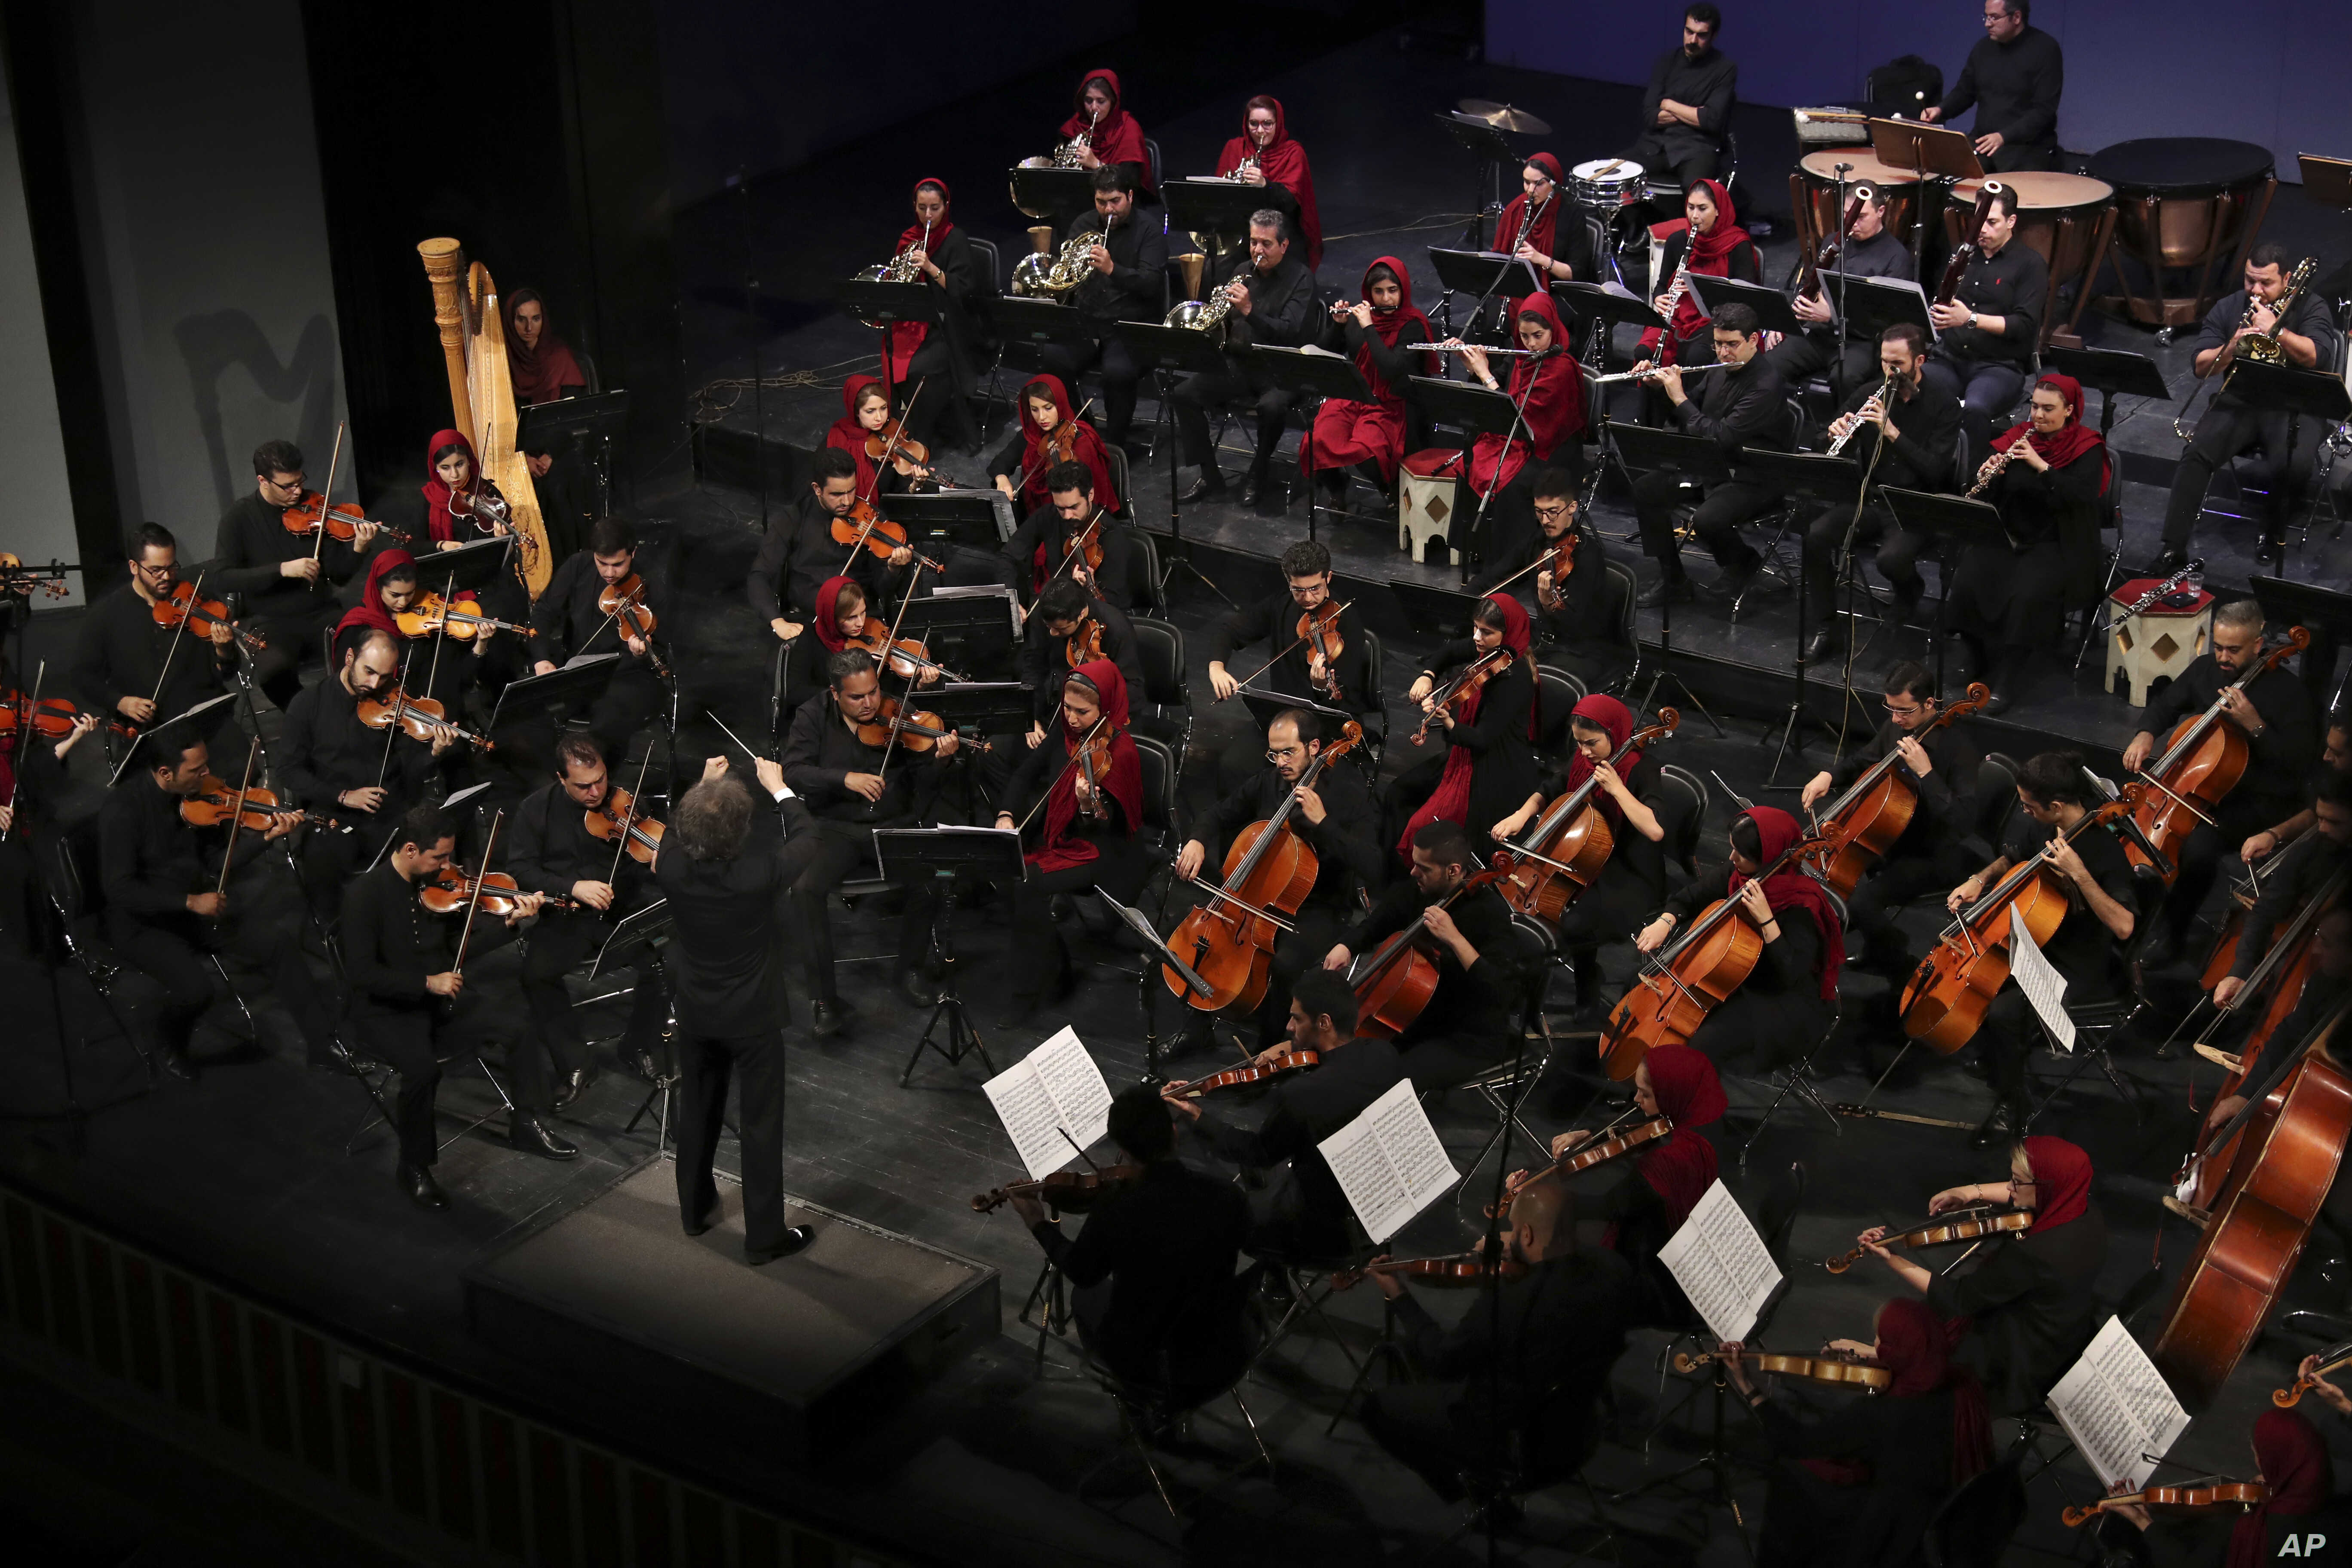 The Tehran Symphony Orchestra performs pieces by 19th-century Russian composers in Unity Hall, in Tehran, Iran, July 3, 2019.